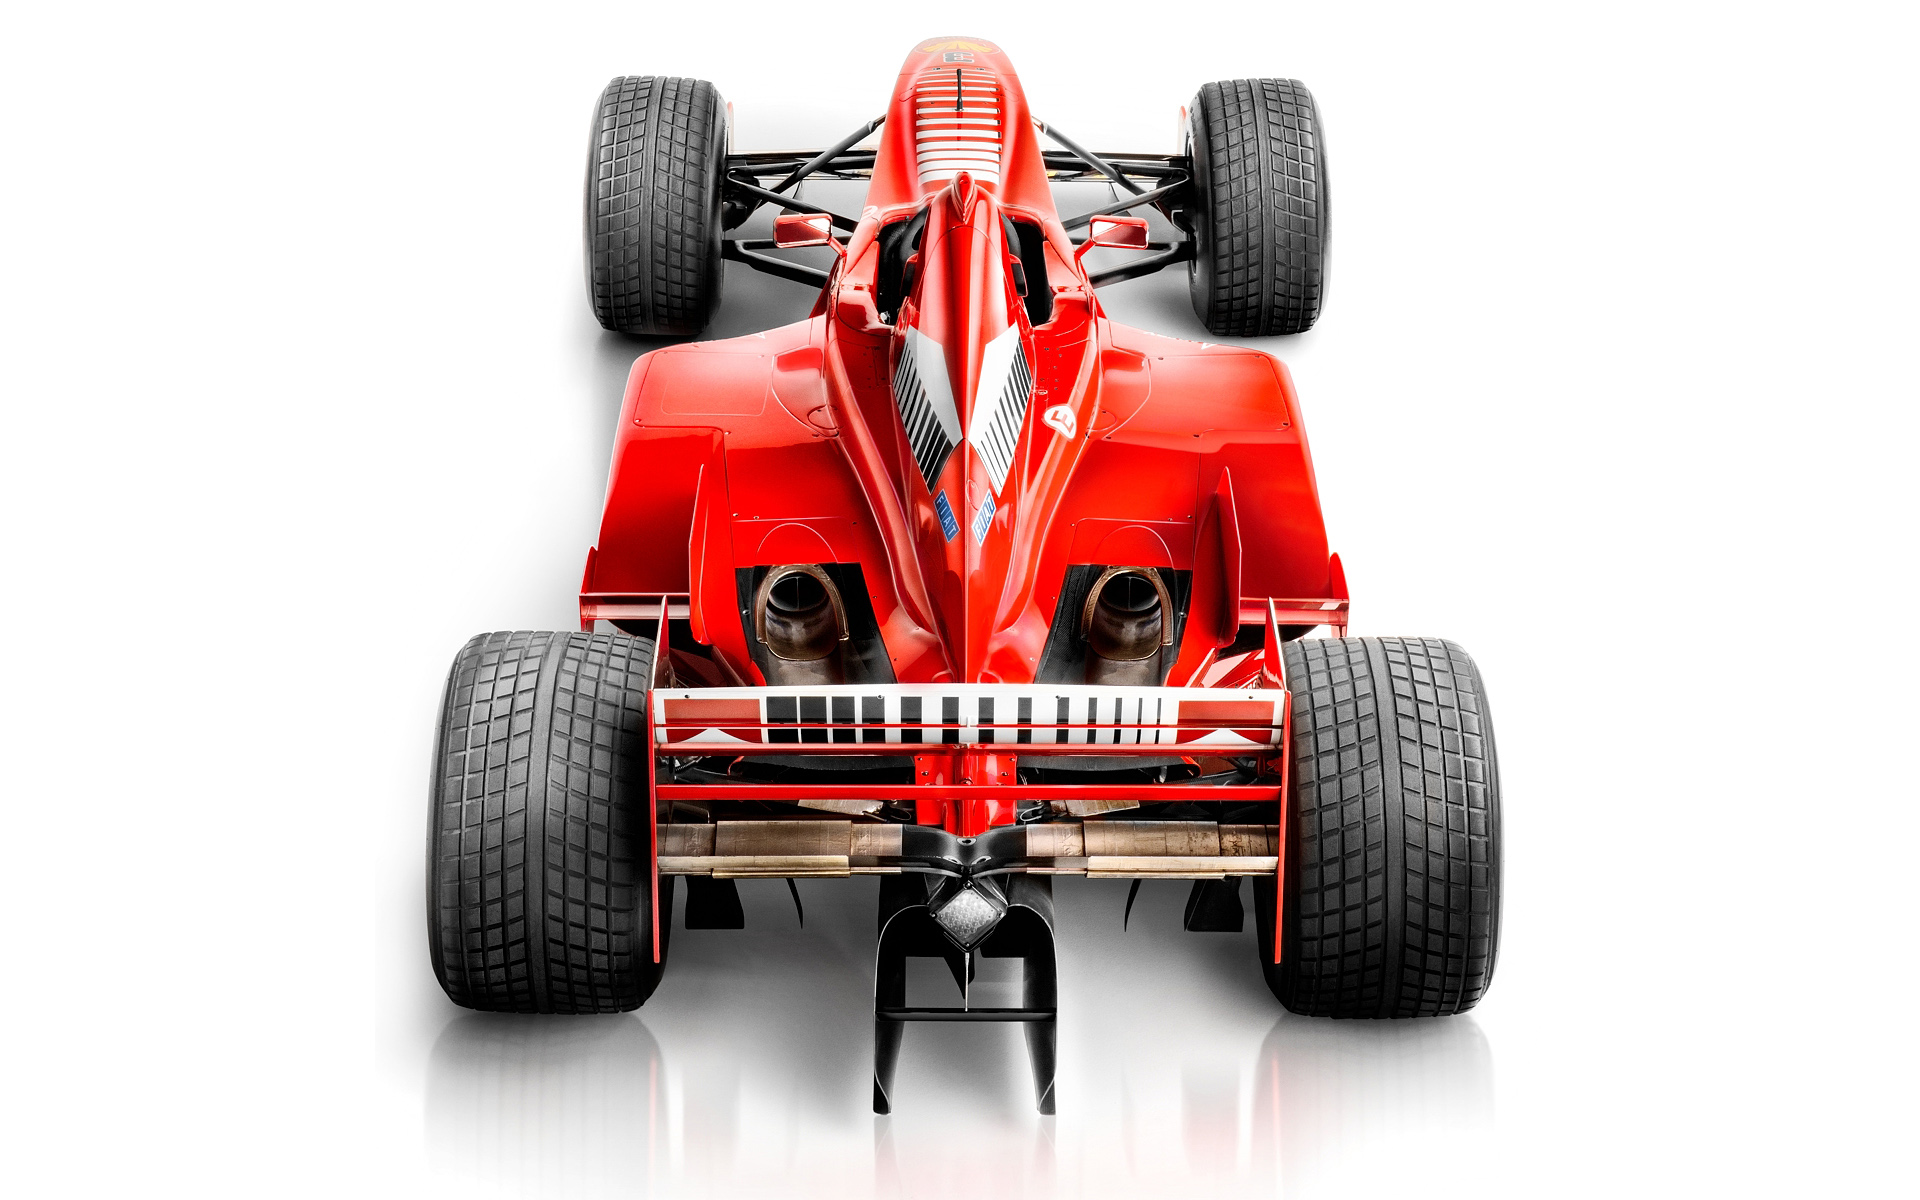 Michael Schumacher F1 car by Blair Bunting